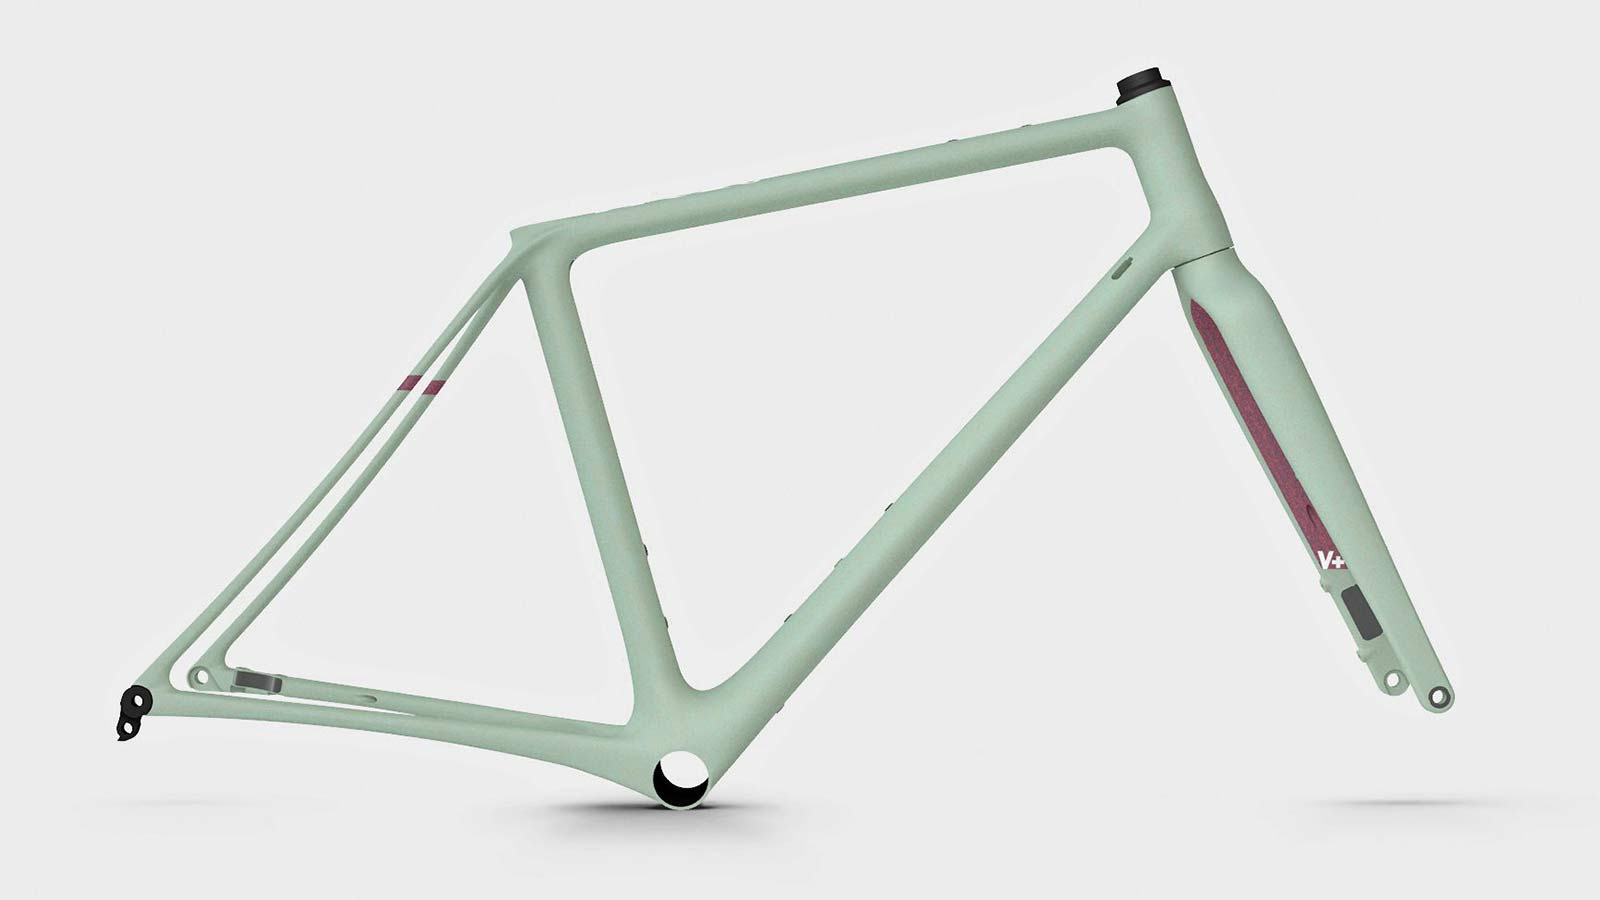 Vielo V+1 gravel bike, updated gen2 lightweight carbon fast gravel race bikes, frameset